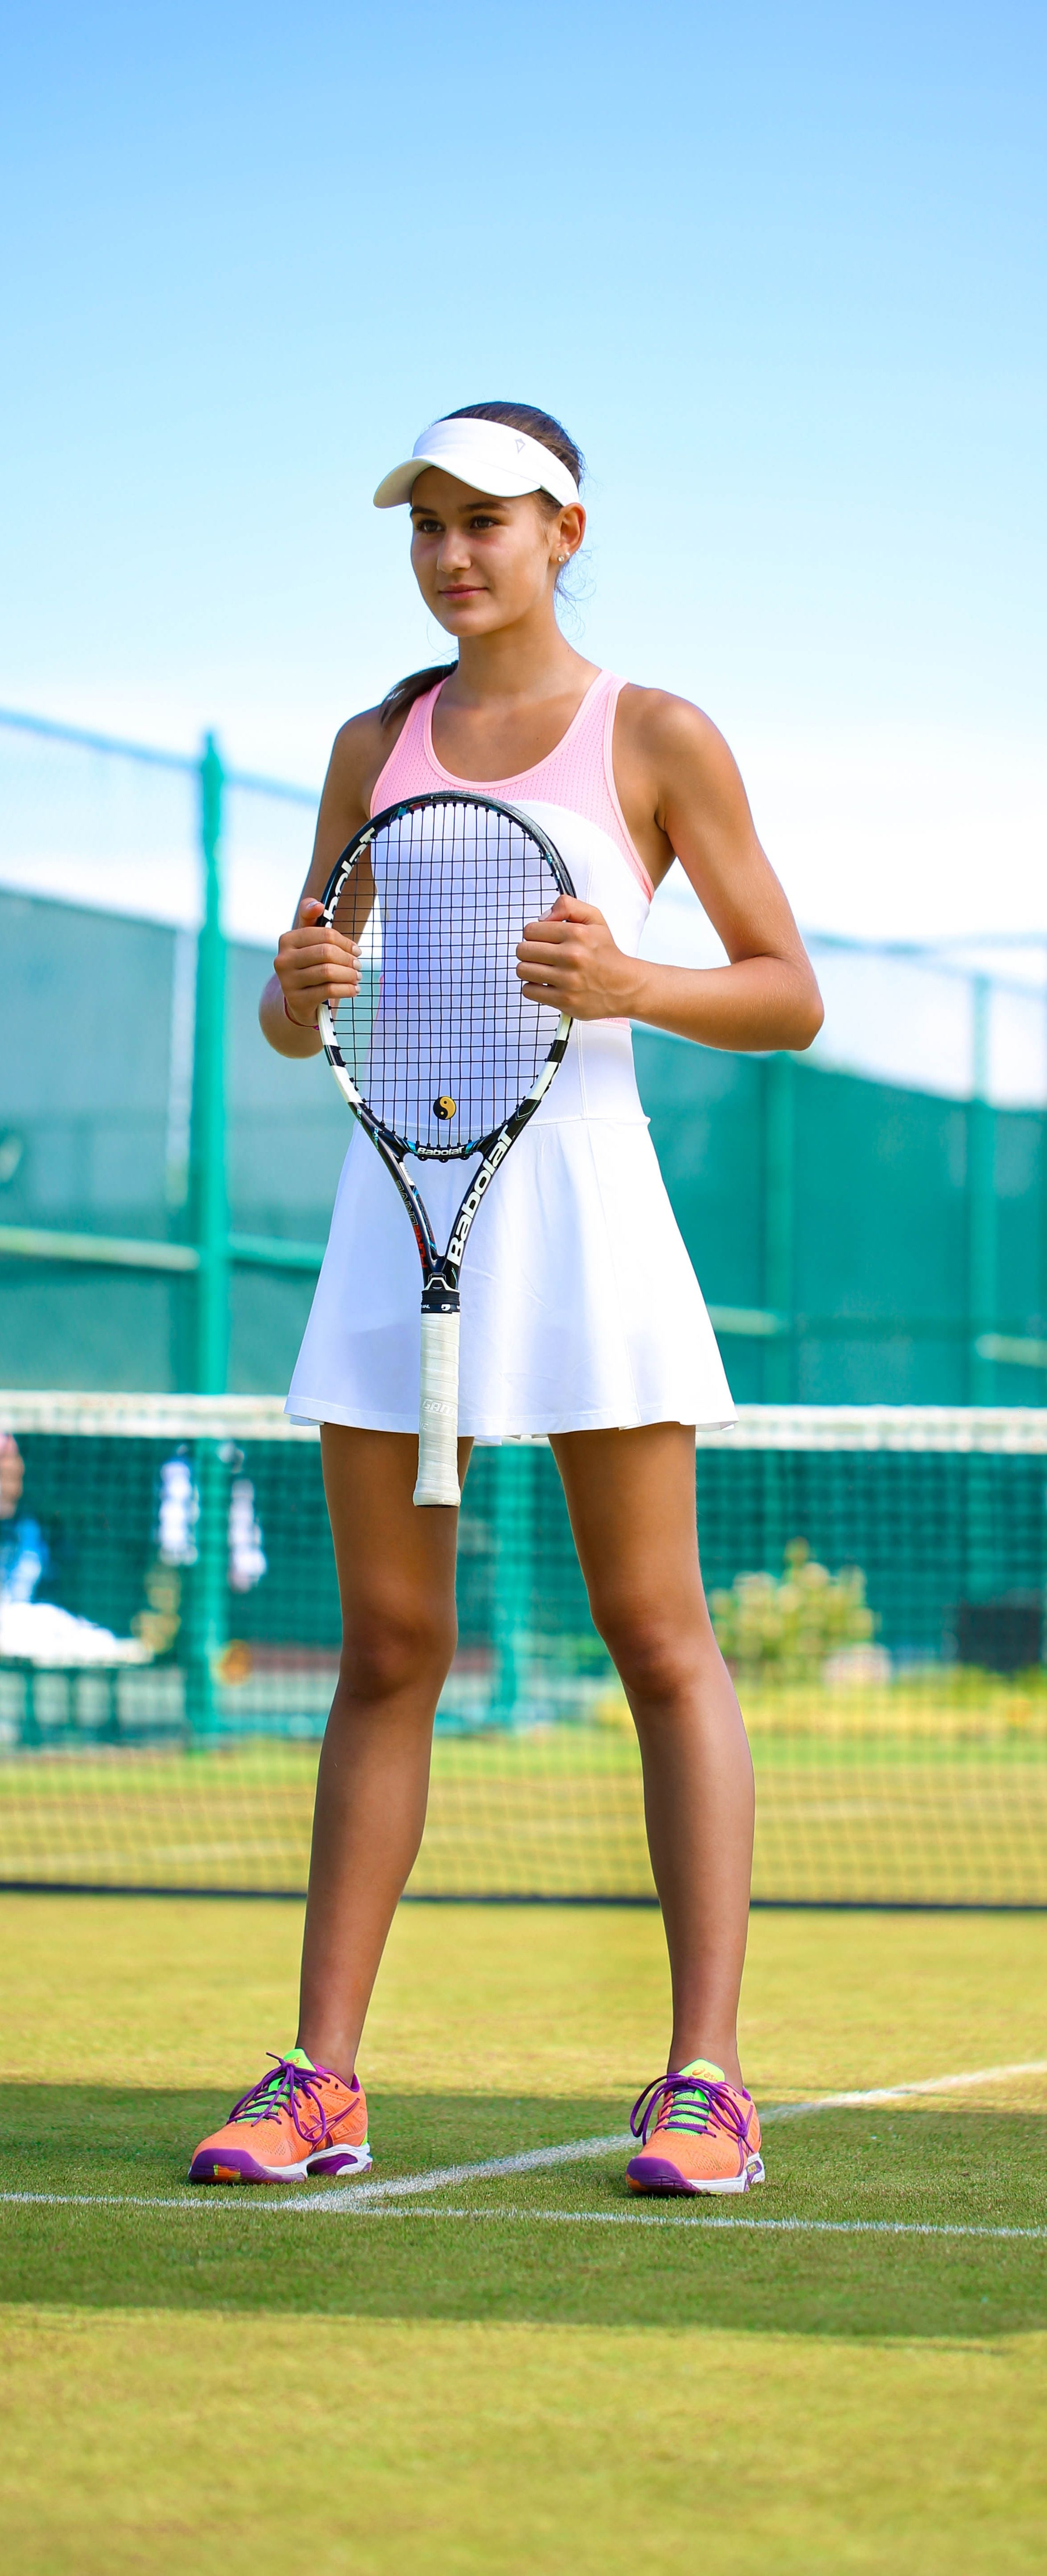 for the love of the game. | tennis gear